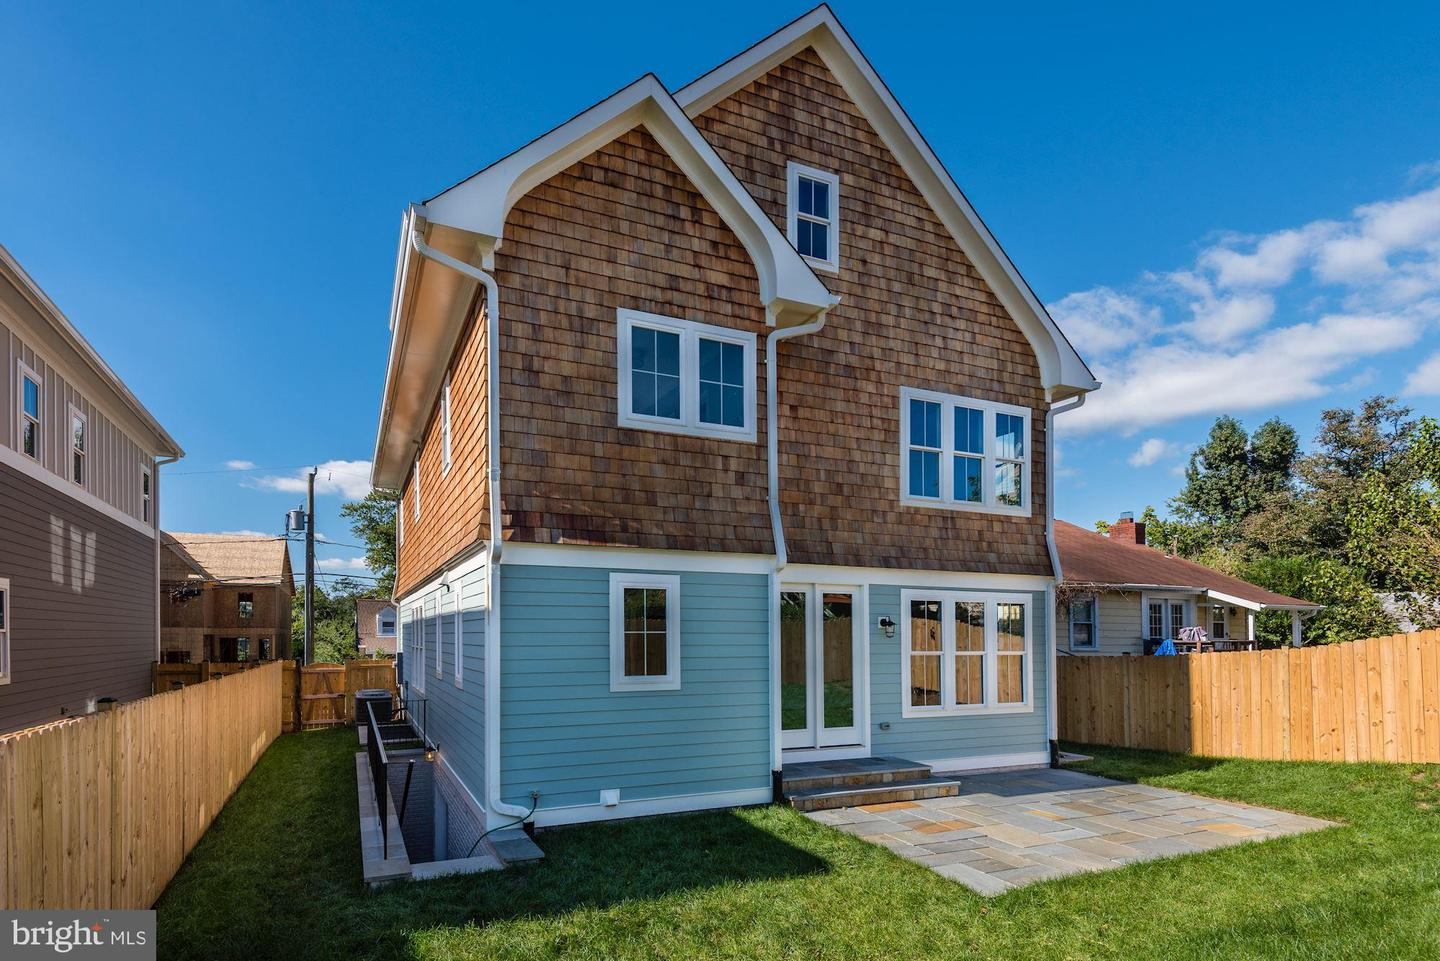 Additional photo for property listing at 1847 Columbus St N  Arlington, Virginia 22207 United States